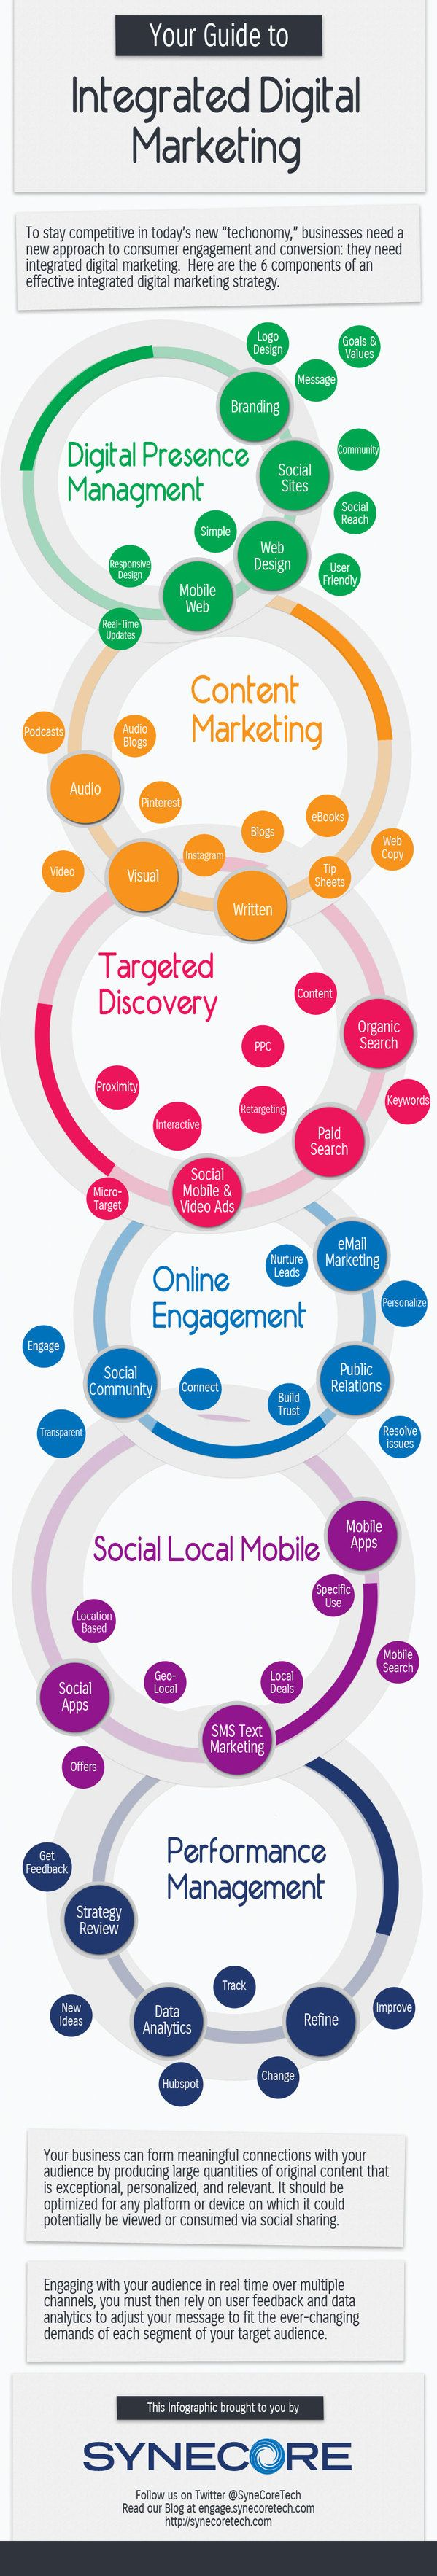 """DIGITAL MARKETING -         """"Your Guide to Integrated Digital Marketing -         Infographic on integrating branding, content, target, engagement, performance."""""""